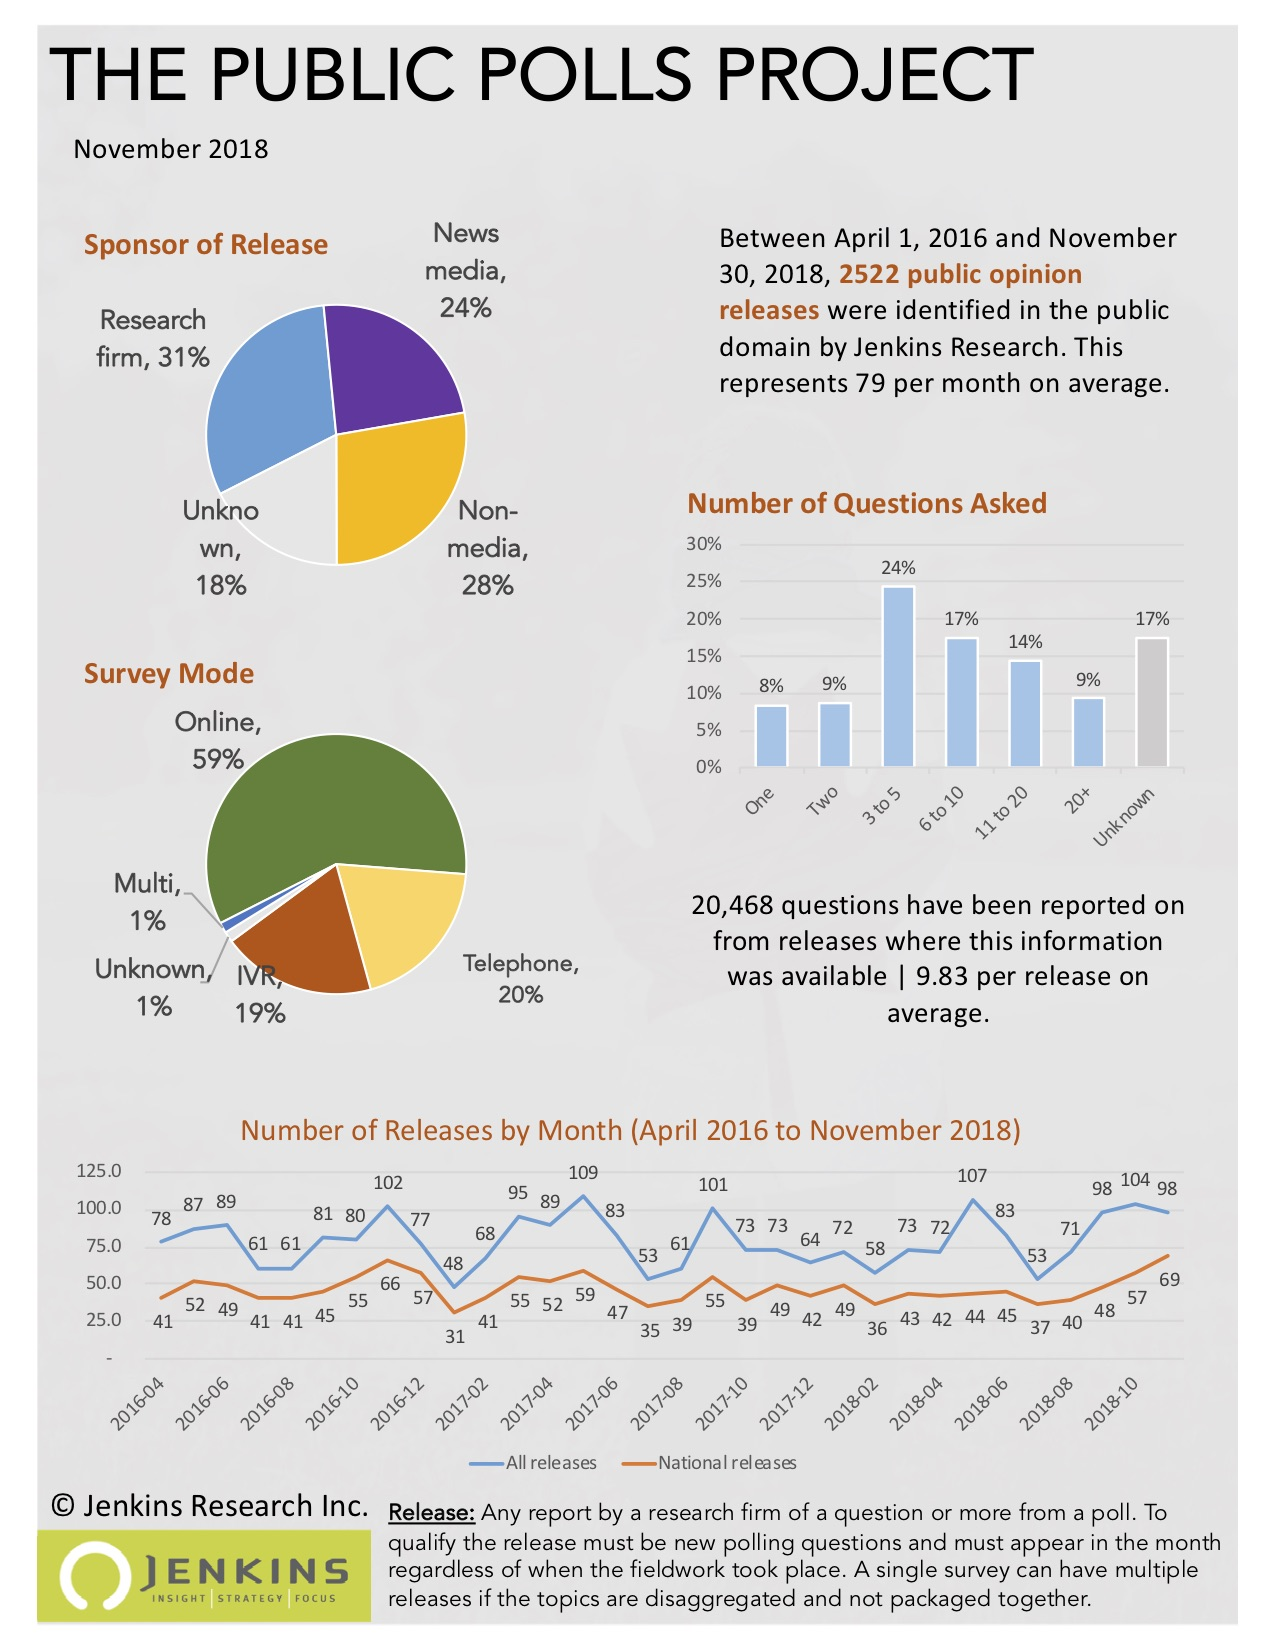 An infographic based on data up to and including November 30, 2018